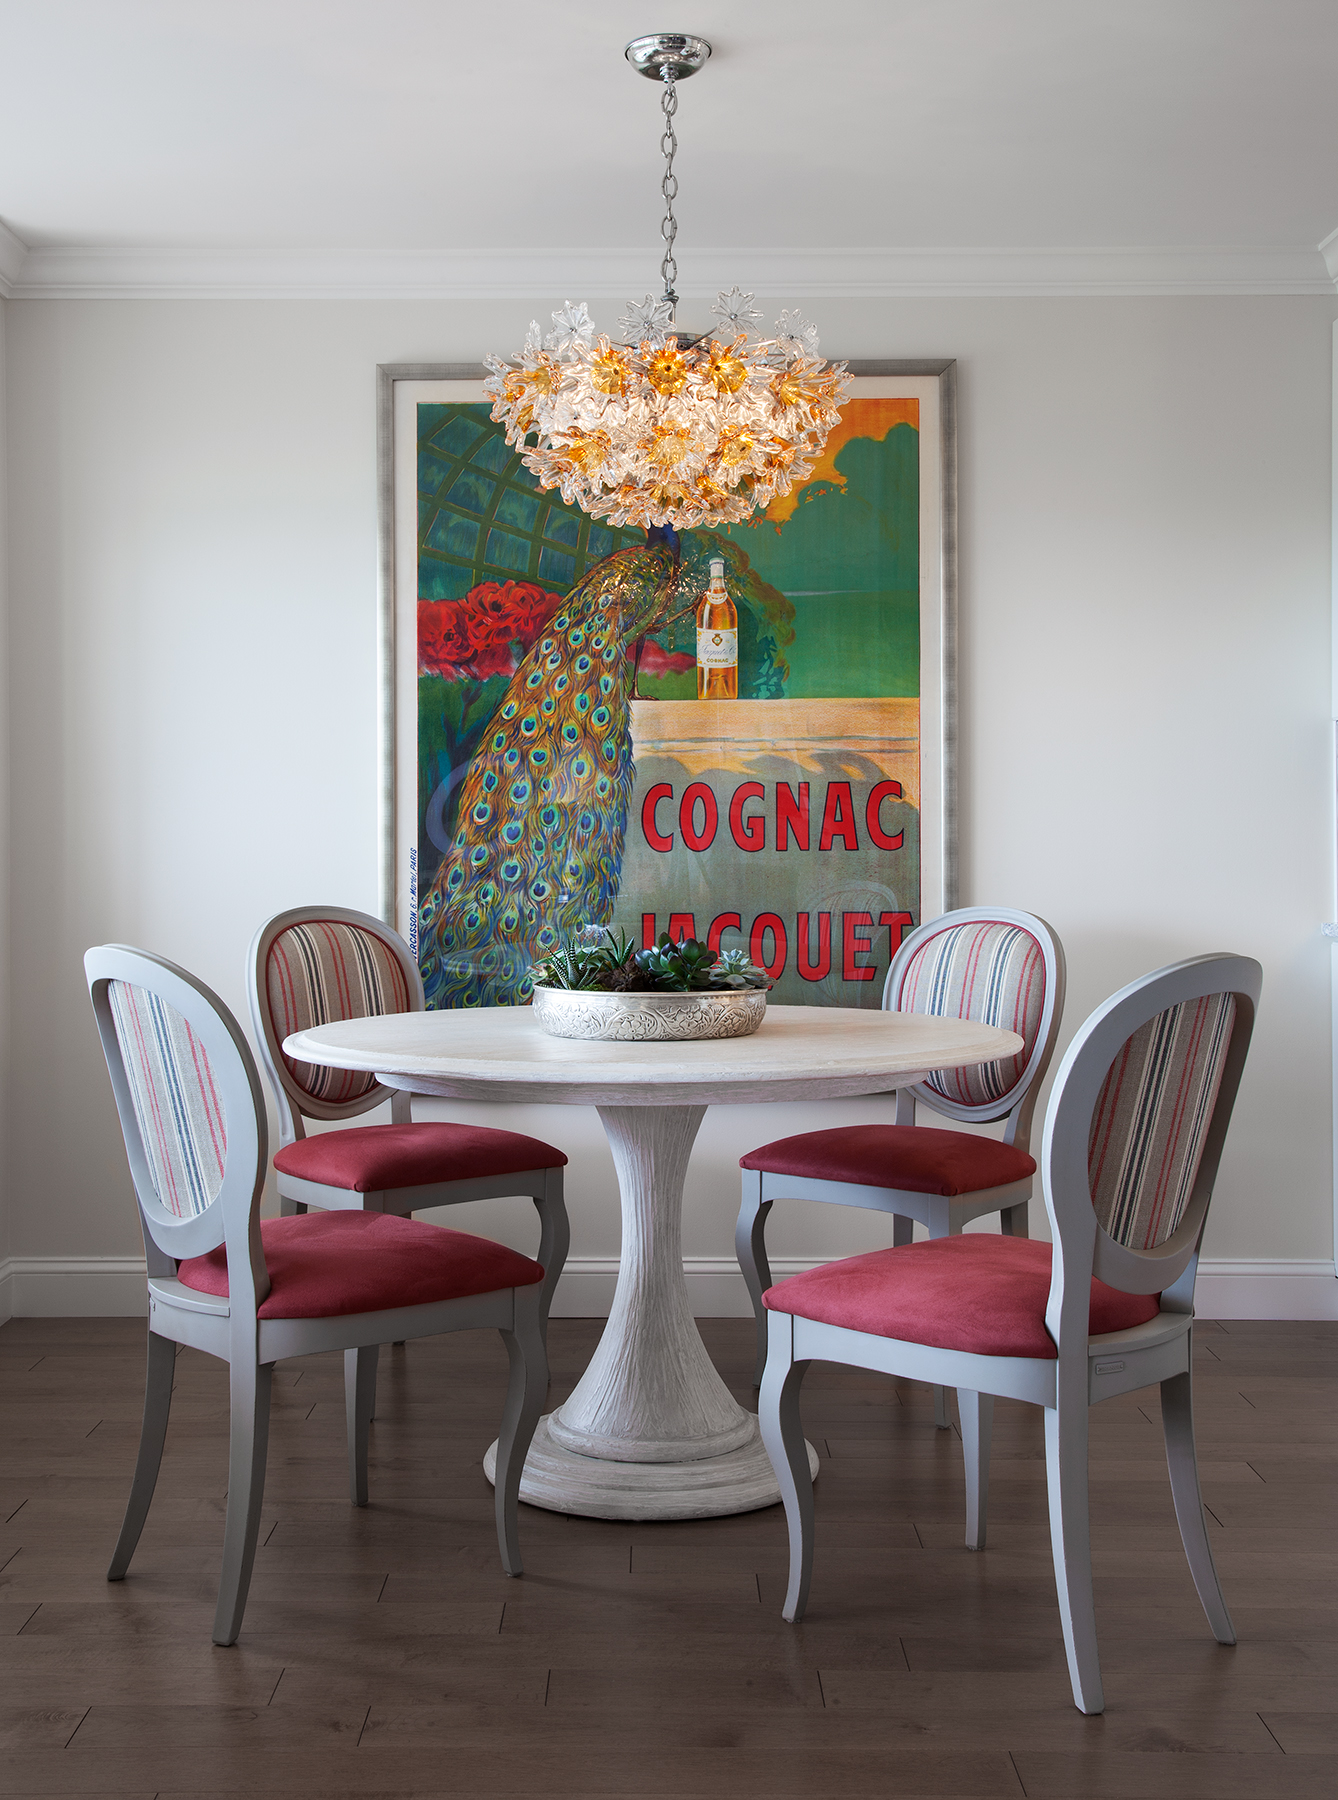 Pattern, stripes and bright color make the dining area sing!